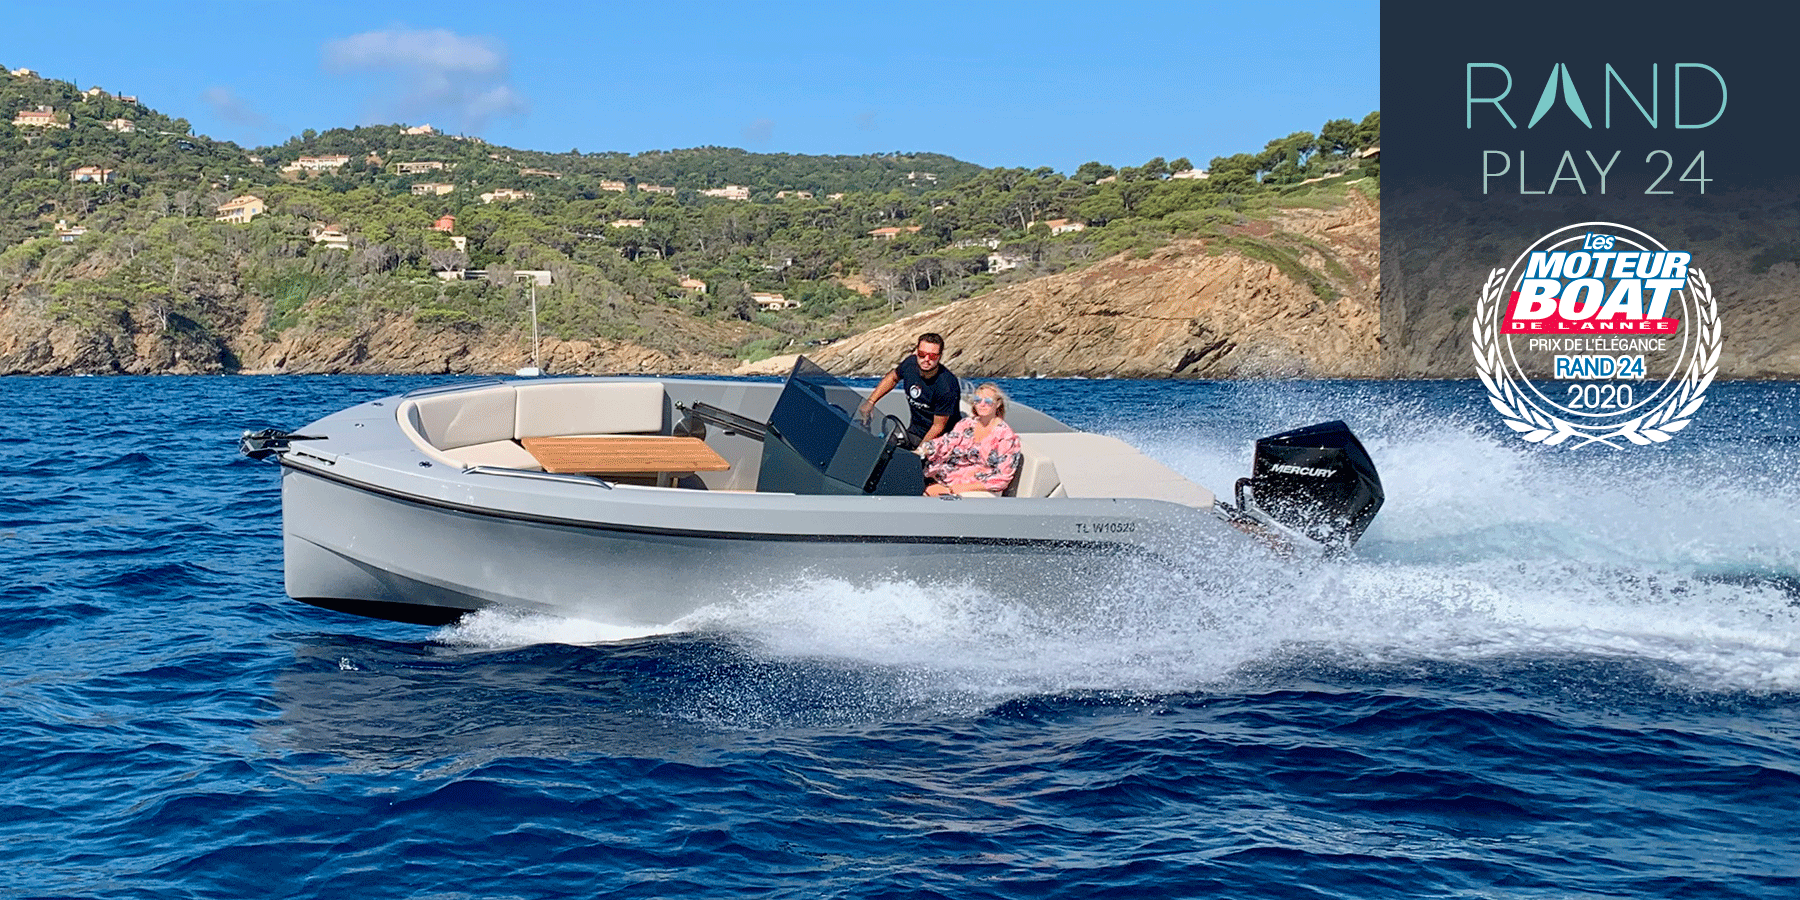 Moteur Boat of the Year